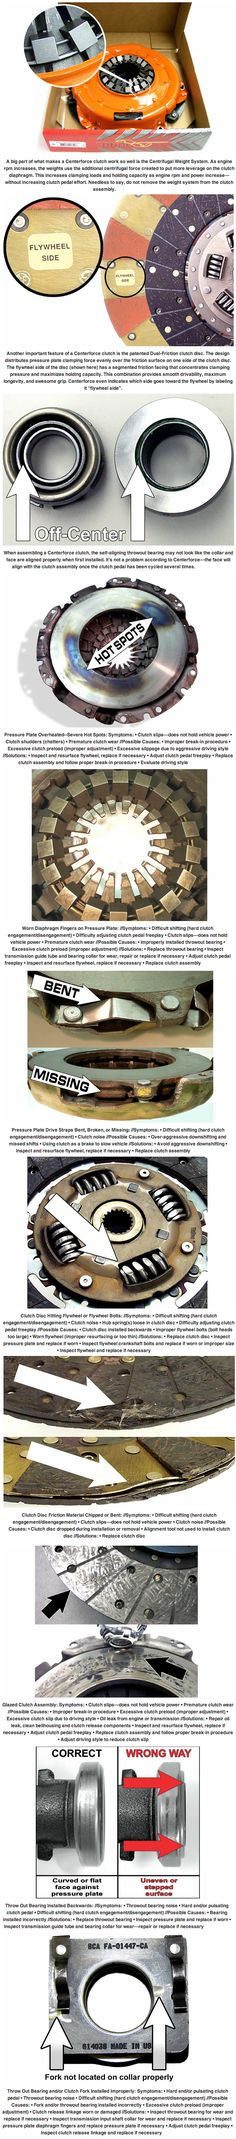 Clutch problems can be pretty tough to pinpoint, especially without tearing the assembly down to see what's what. That's why we asked the experts at Centerforce for the causes of the most common clutch culprits—poor shifting, clutch slippage and shudder, and improper clutch release. Some of the causes aren't even connected to the clutch itself. Read more...